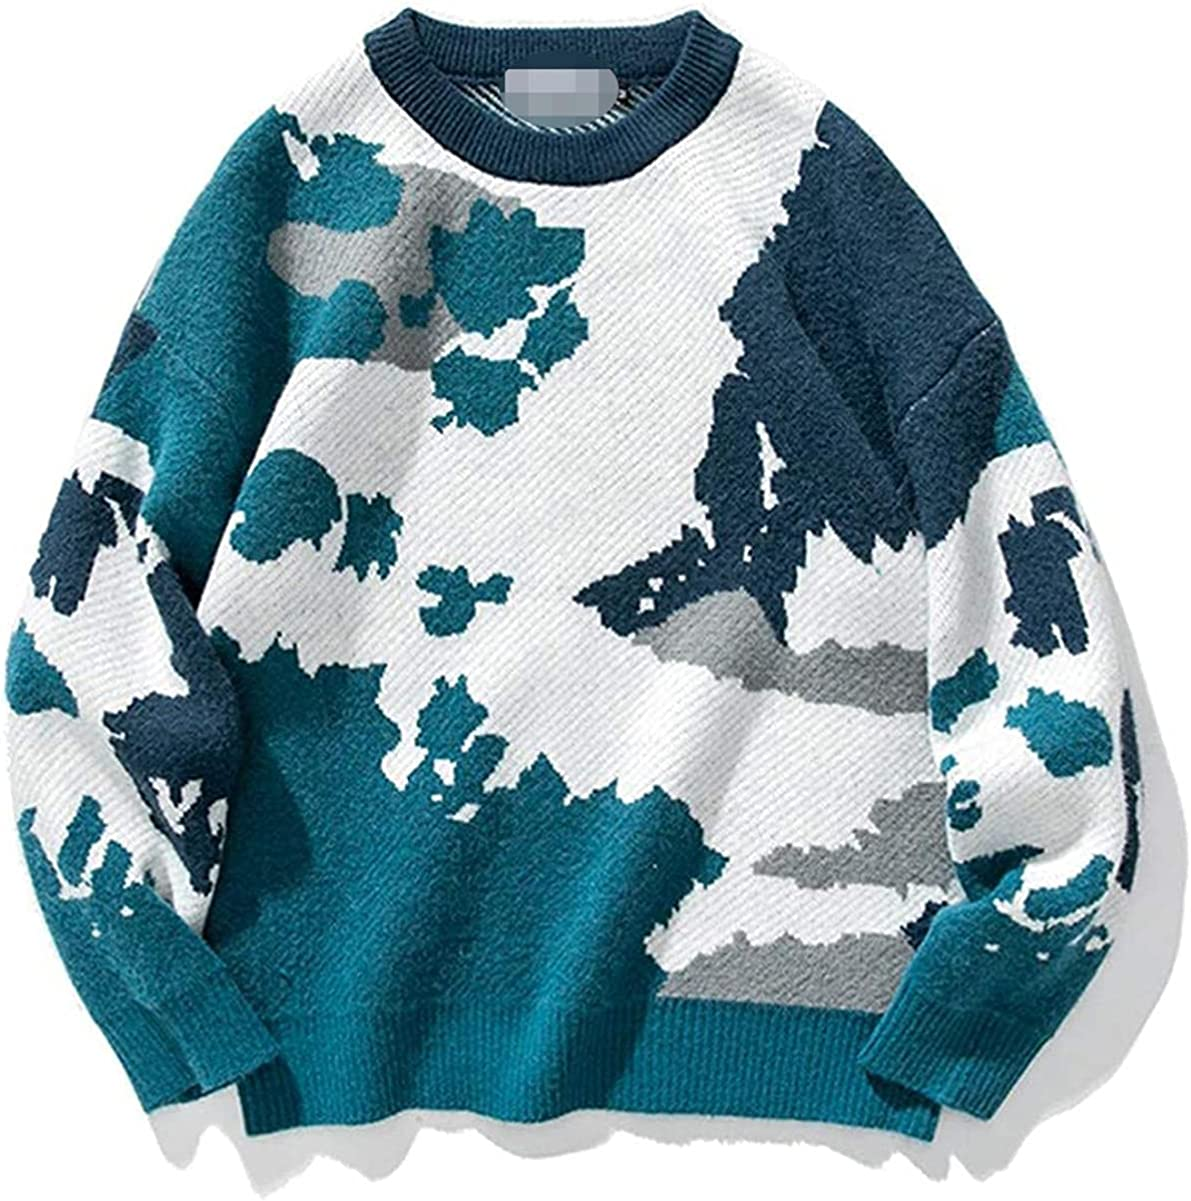 JOAOL Men Camo Harajuku Winter Knitted Sweater Pullover O-Neck Wool Sweater Casual Clothes